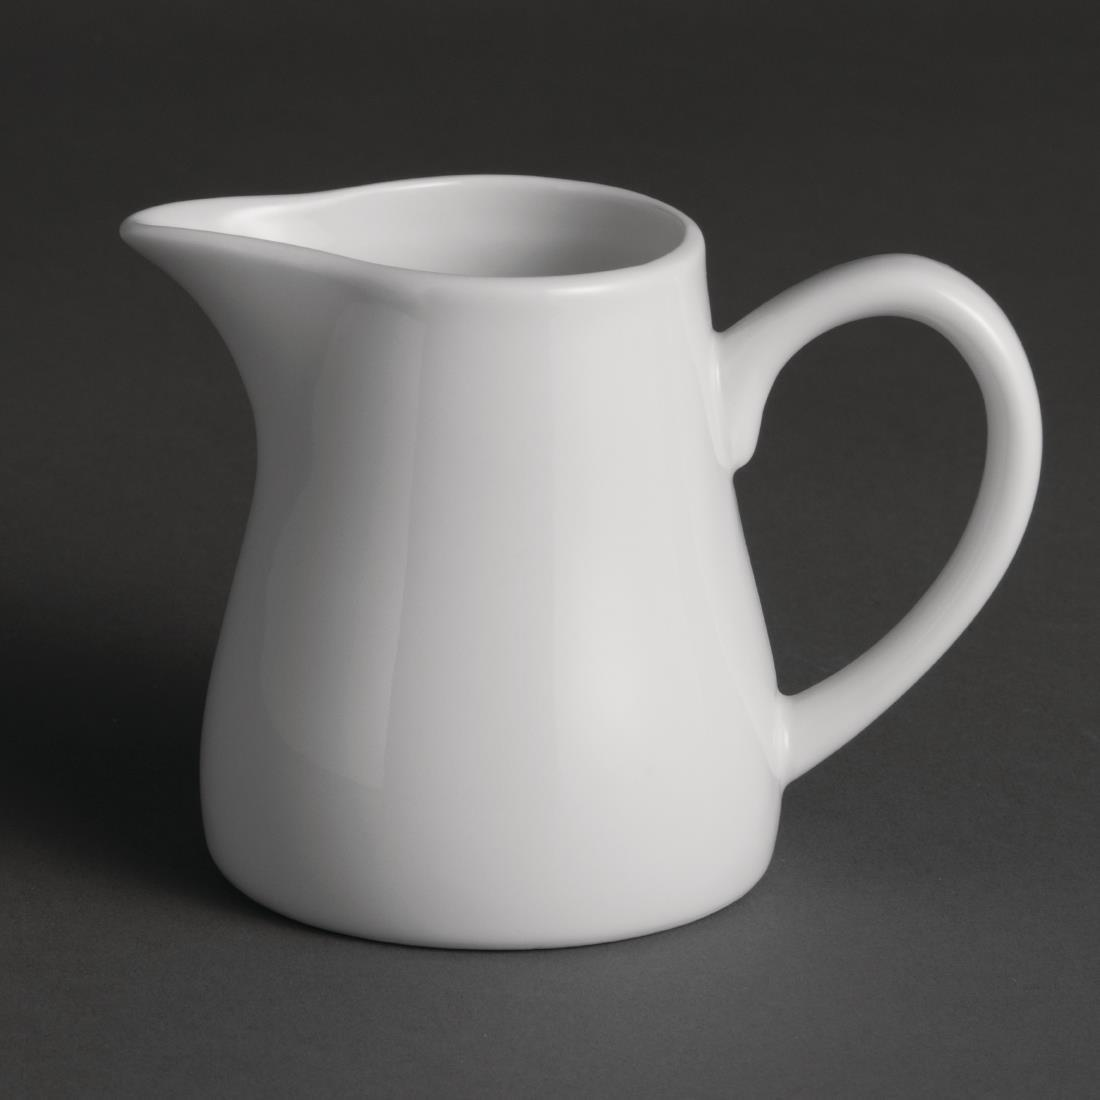 Olympia Whiteware Cream and Milk Jugs 212ml